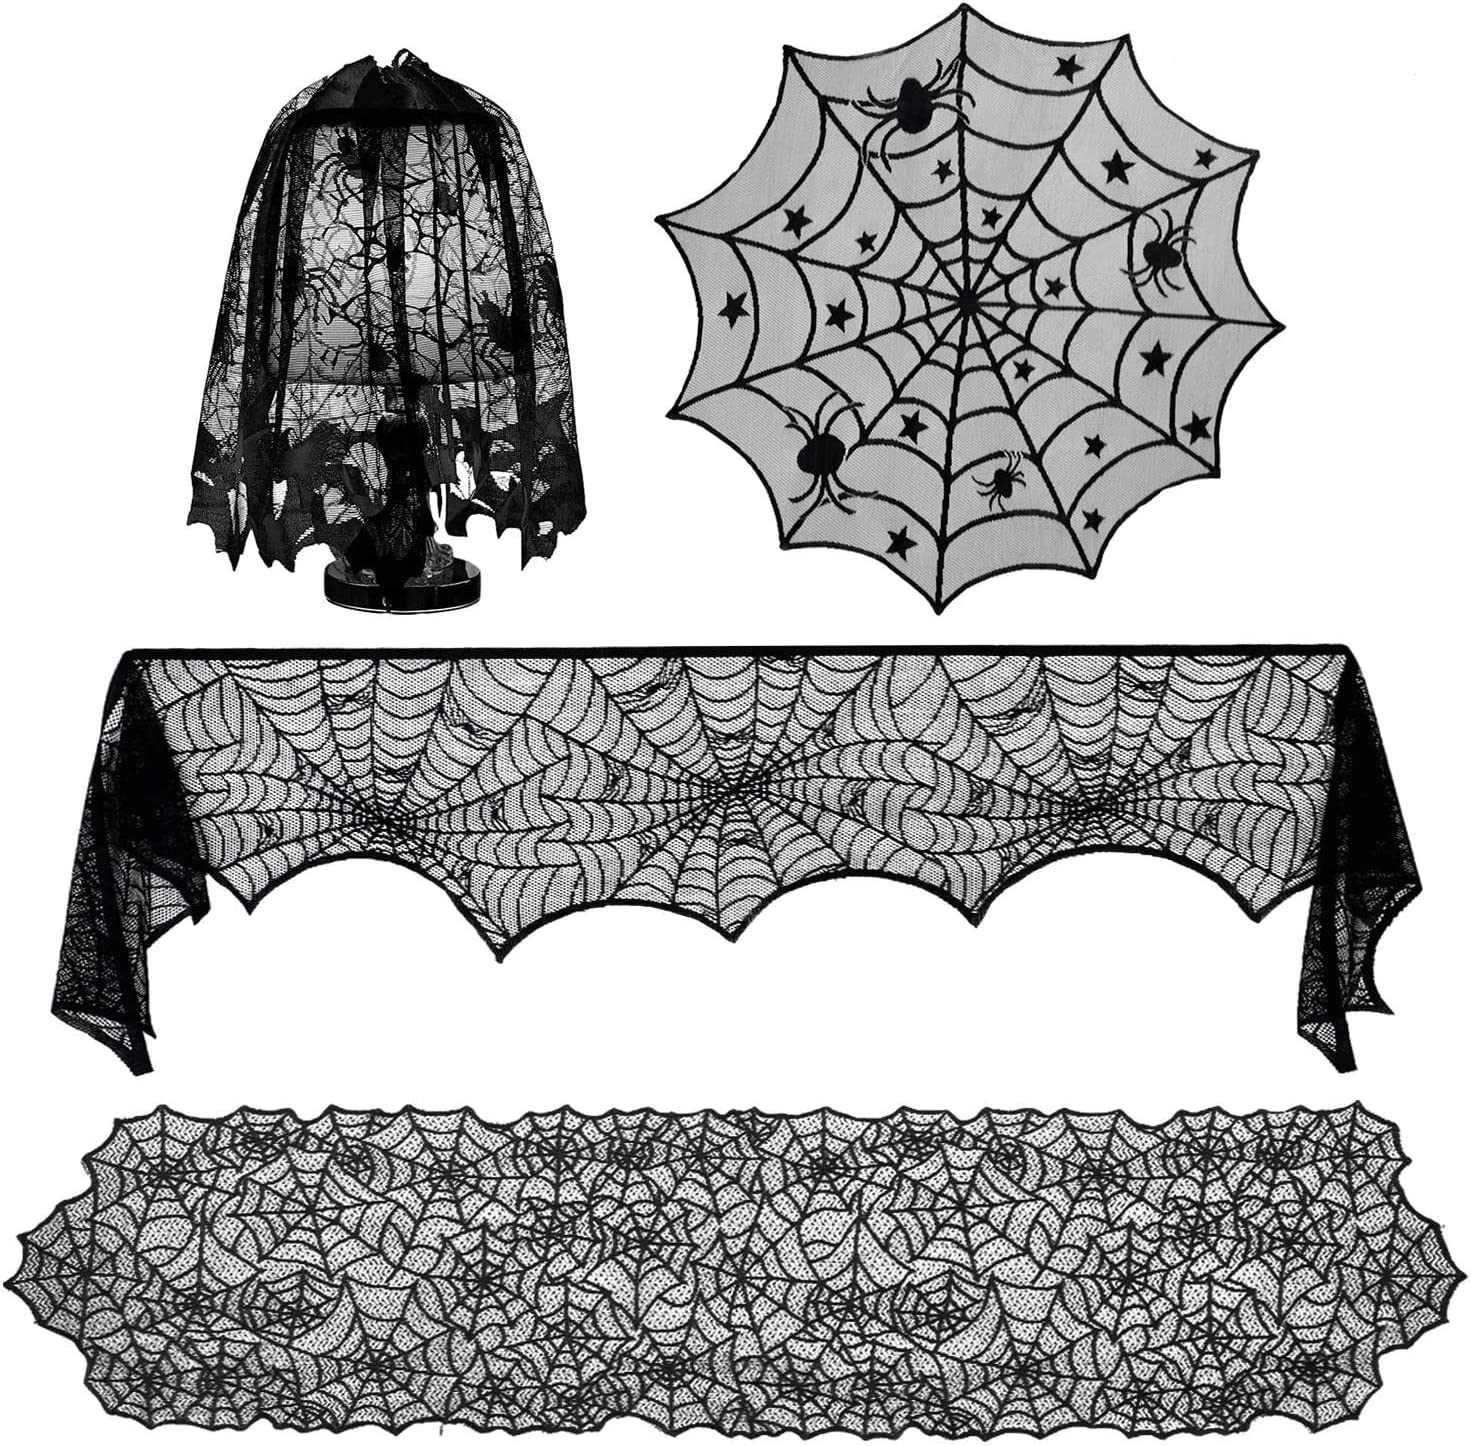 YXGOOD 4 Pcs Halloween Decorations Sets, Tablecloth Spooky Bat Spiderweb Lace Rectangular Tablecloth, Halloween Lamp Shades and Fireplace Scarf Cover